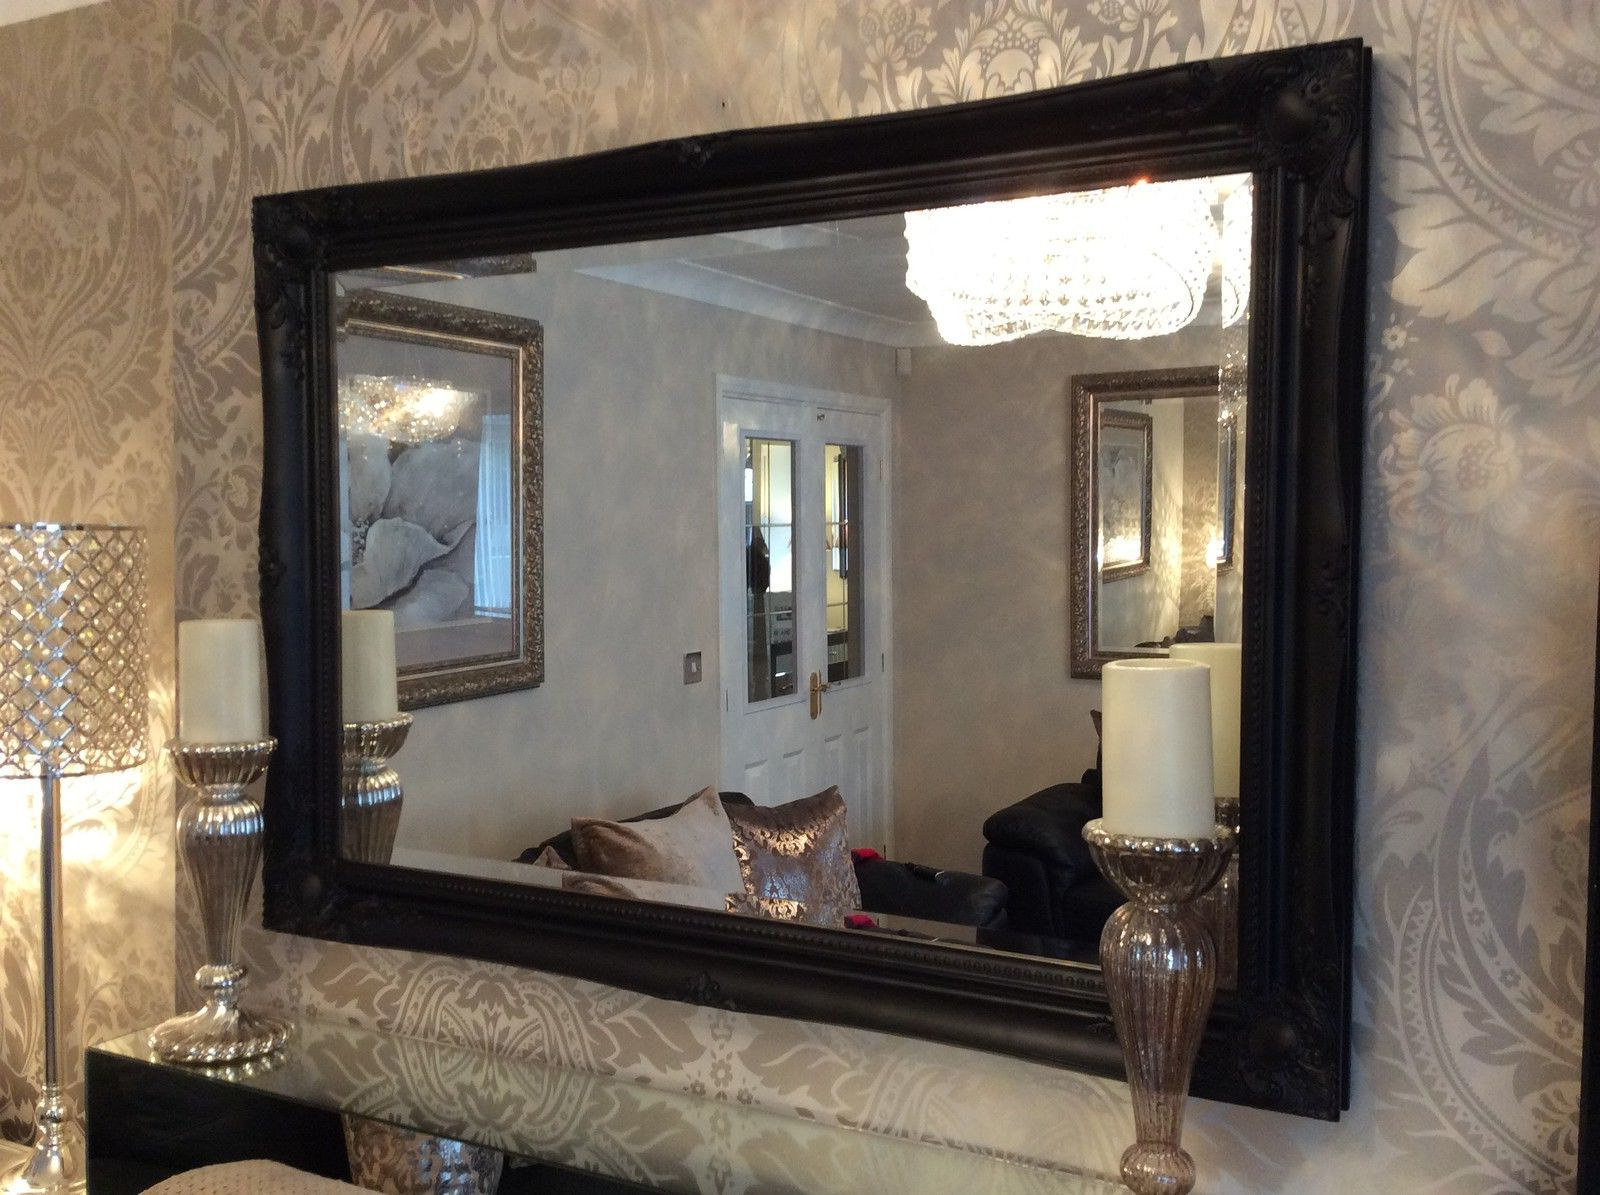 2020 Large Black Stunning Decorative Swept Wall Mirror – Bevelled Glass *new* Throughout Decorative Framed Wall Mirrors (View 18 of 20)